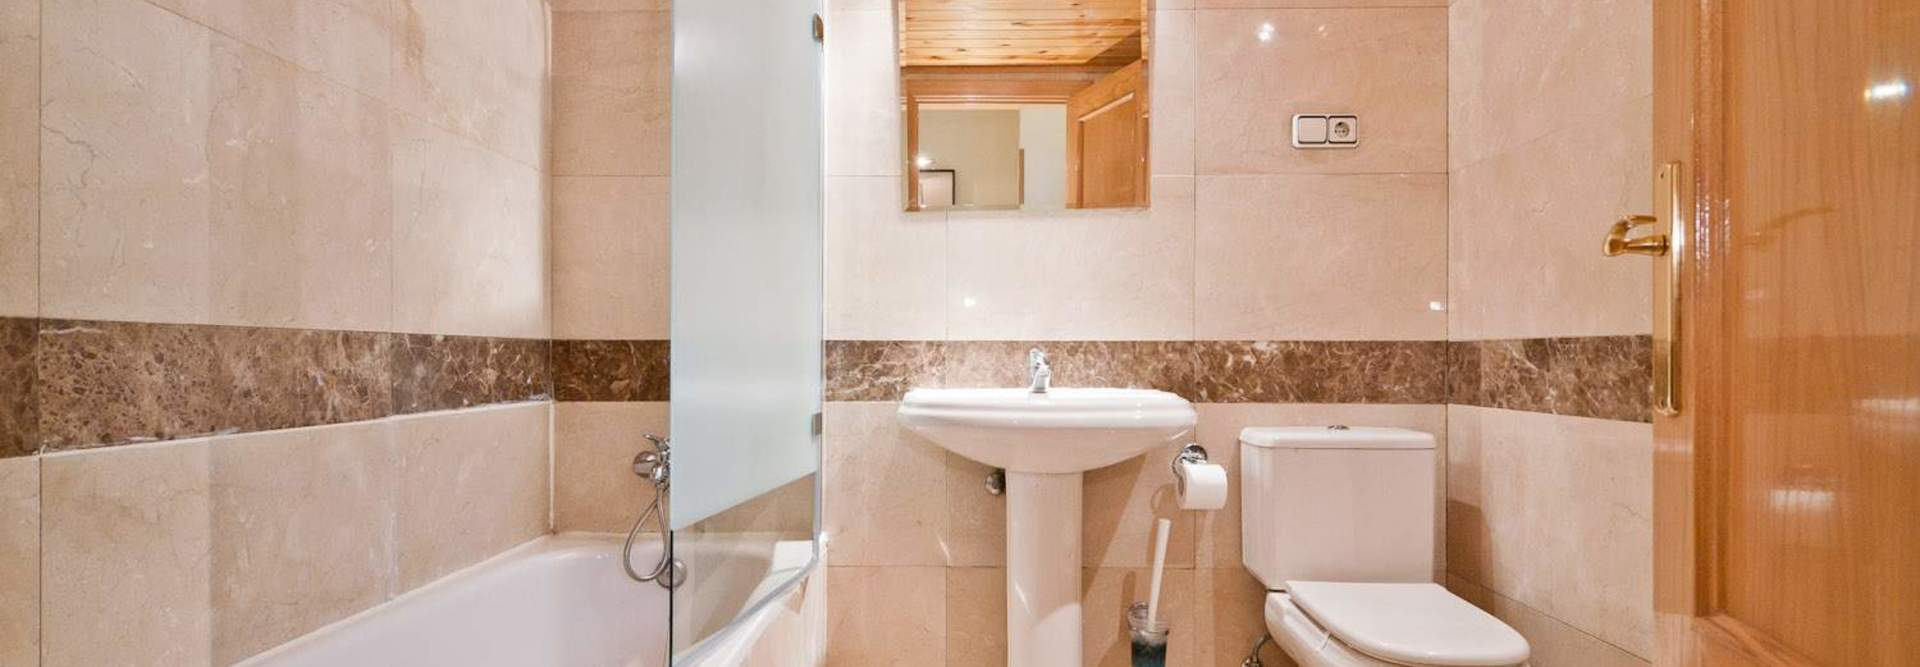 Home alquiler apartamento madrid centro mad4rent  24